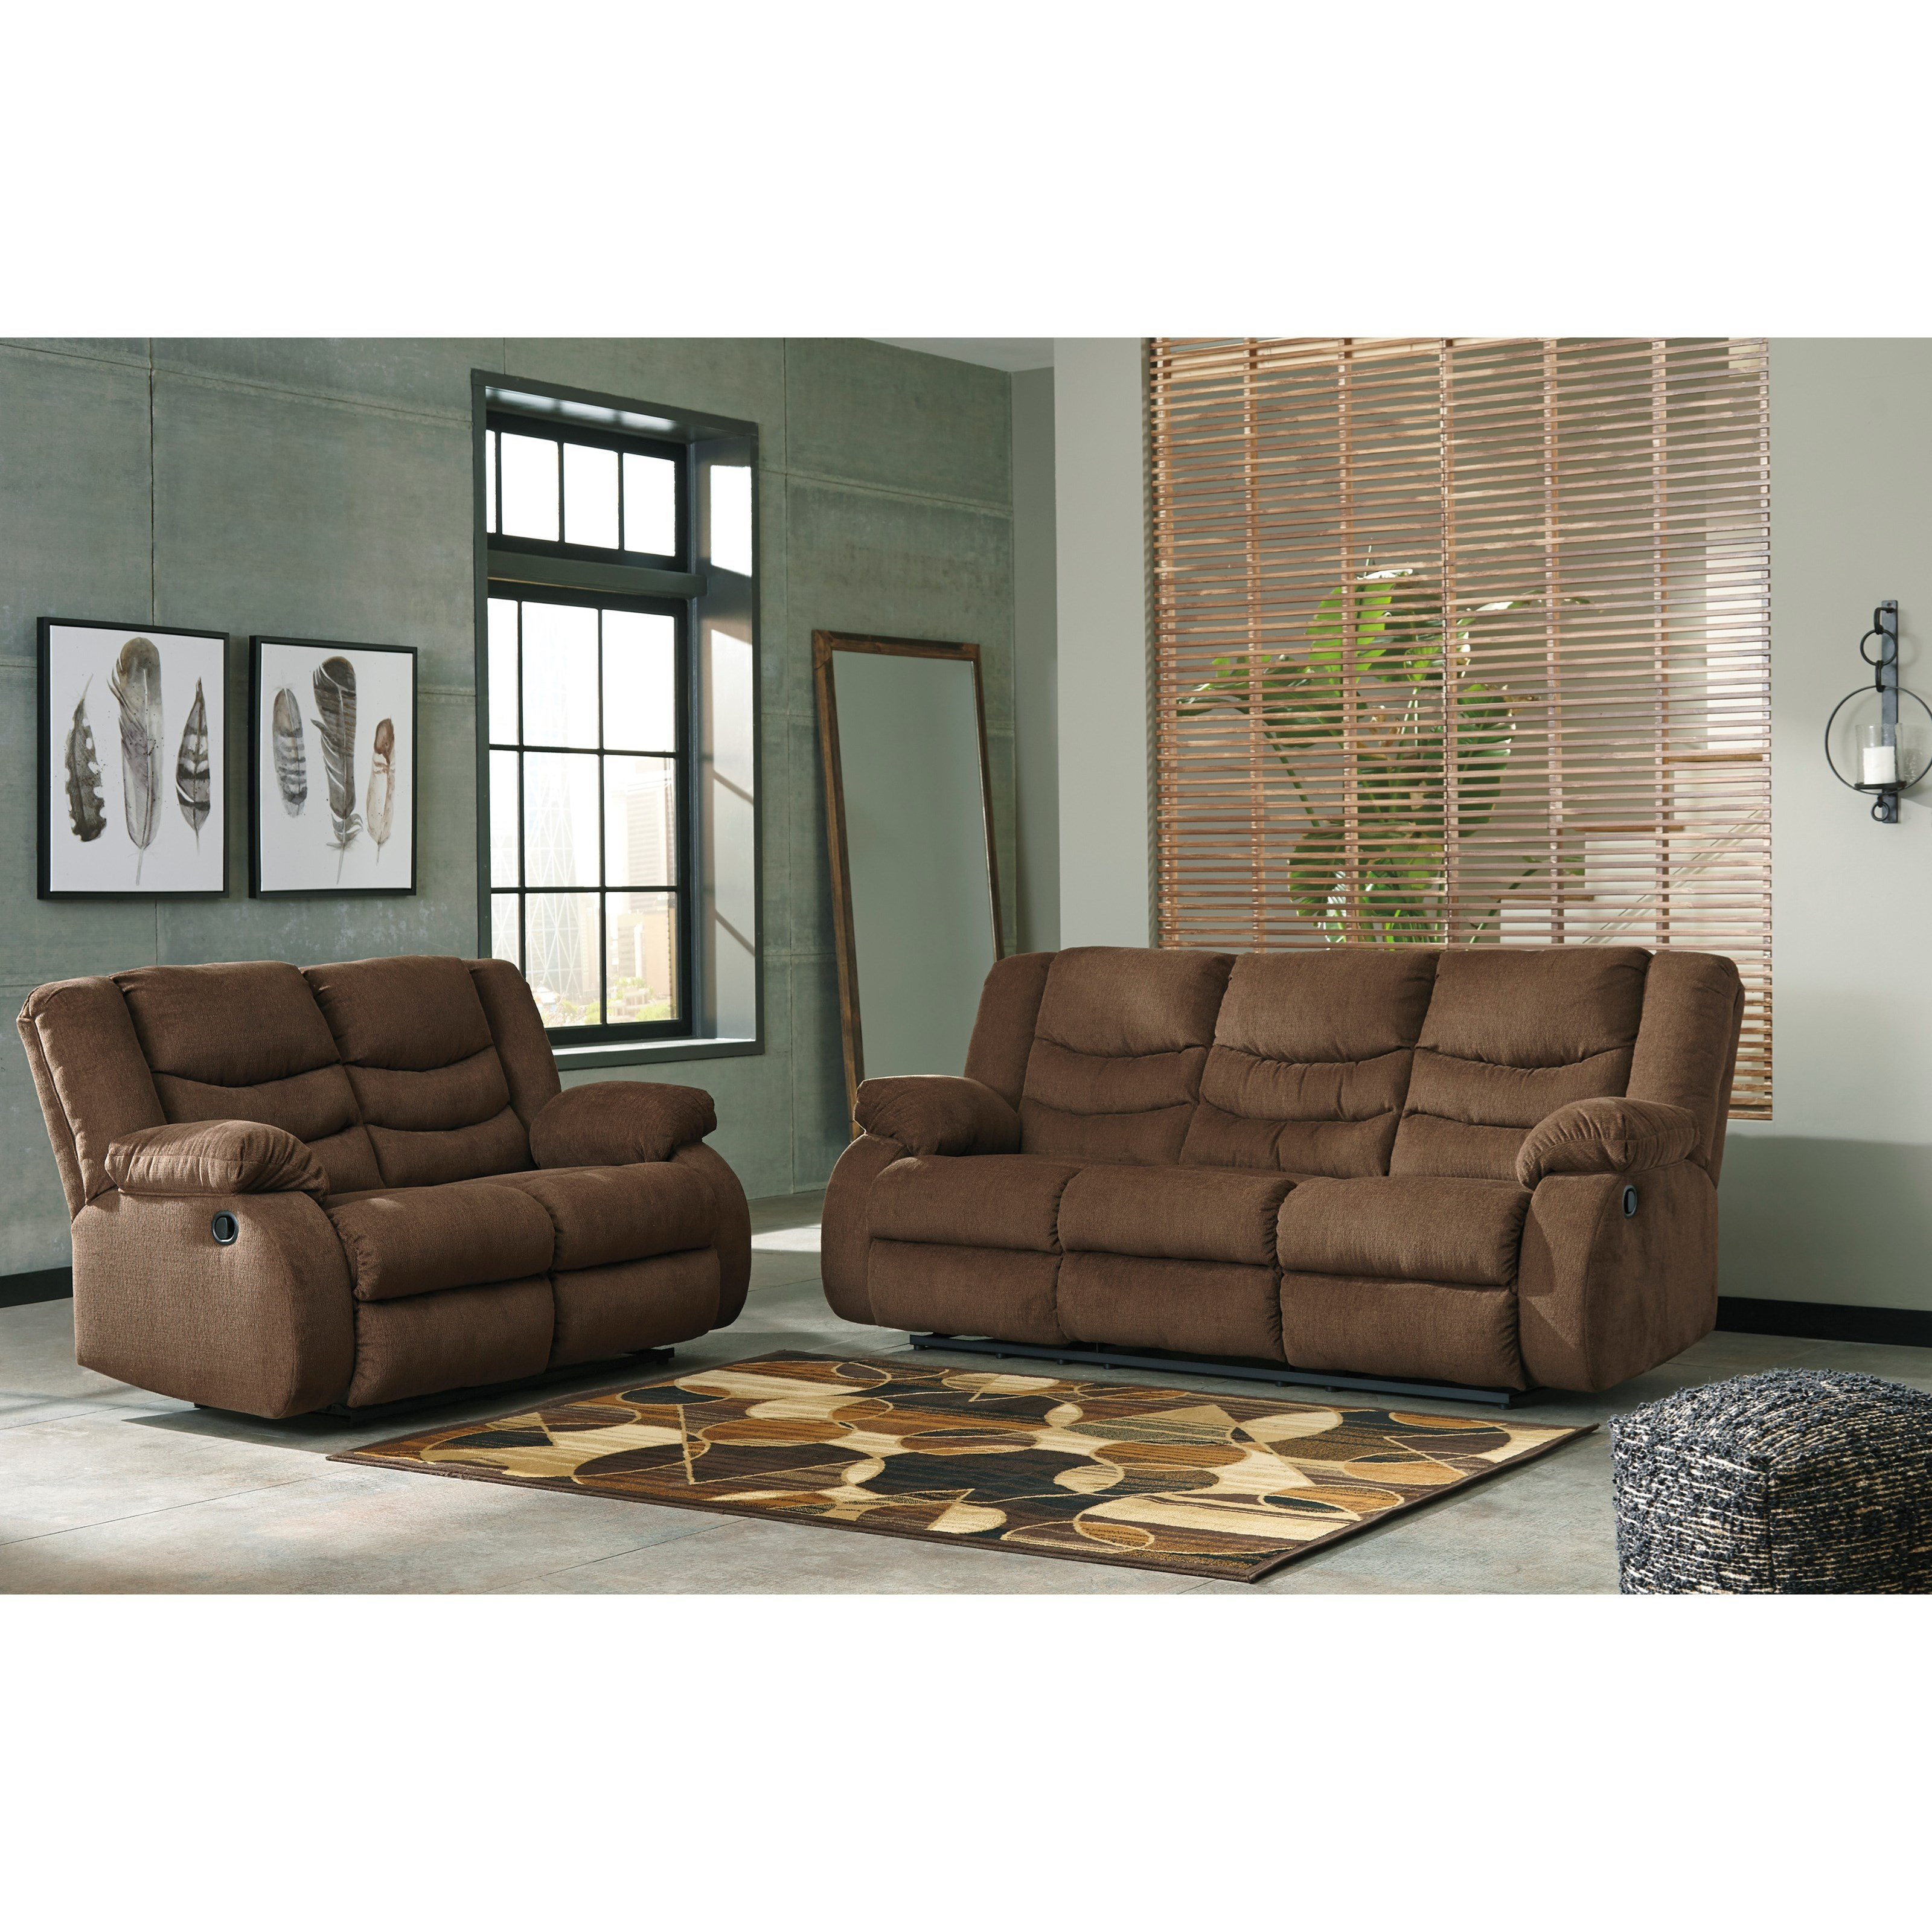 Tulen Reclining Living Room Group by Signature Design by Ashley at Catalog Outlet